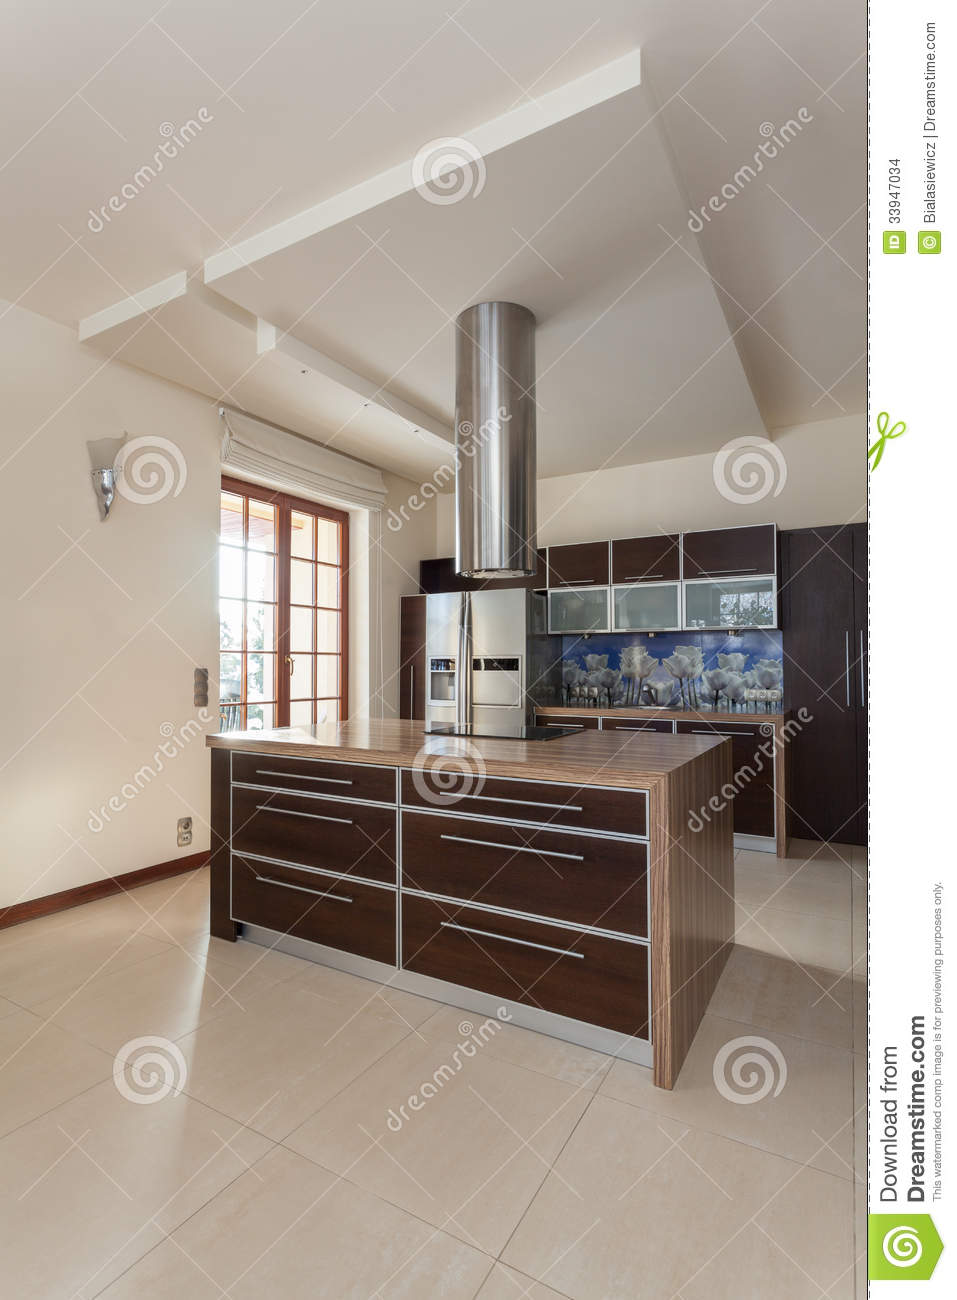 More Similar Stock Images Of Classy House Kitchen Interior